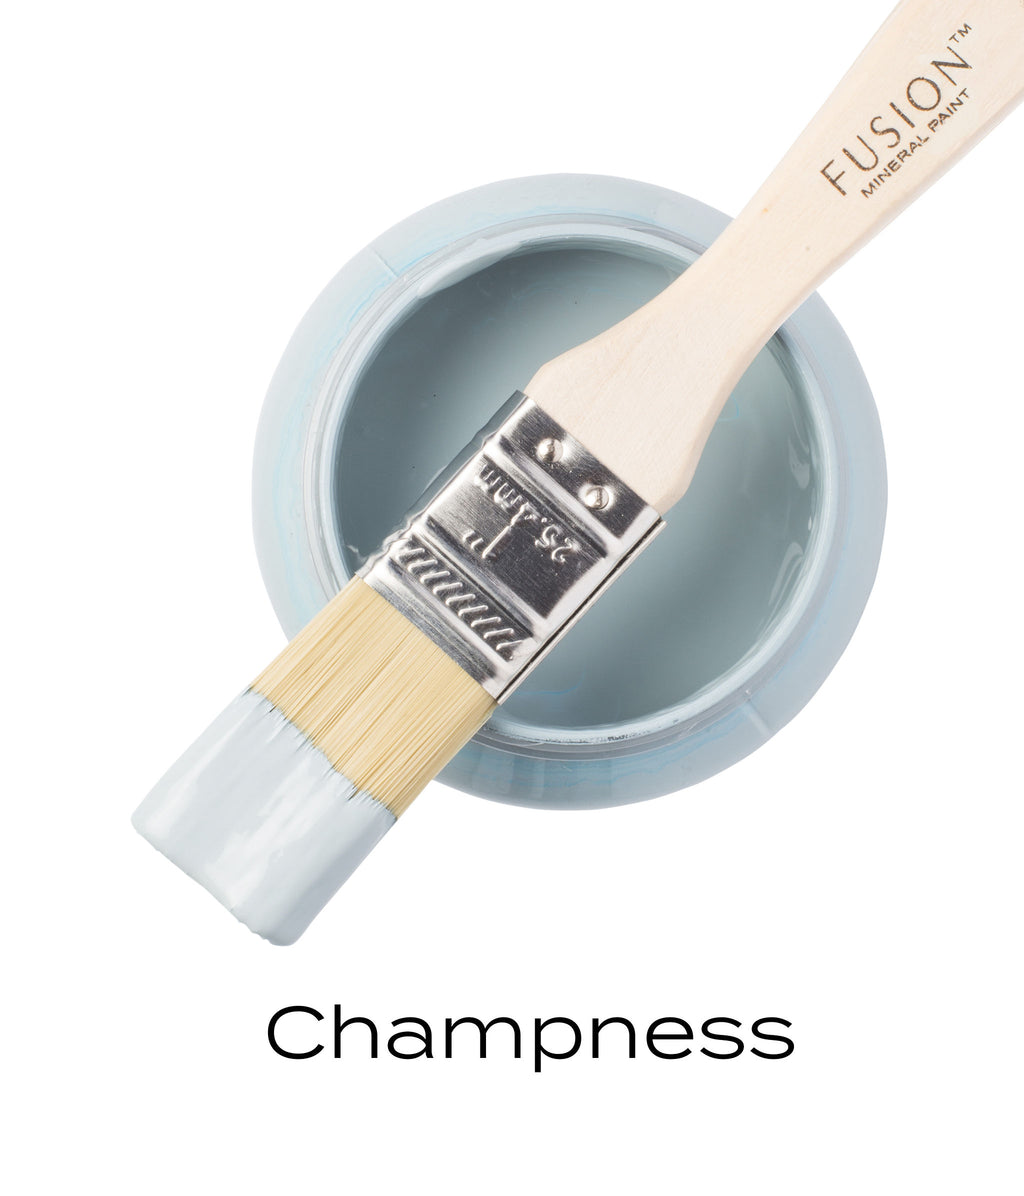 Champness Fusion Mineral Paint Near Me